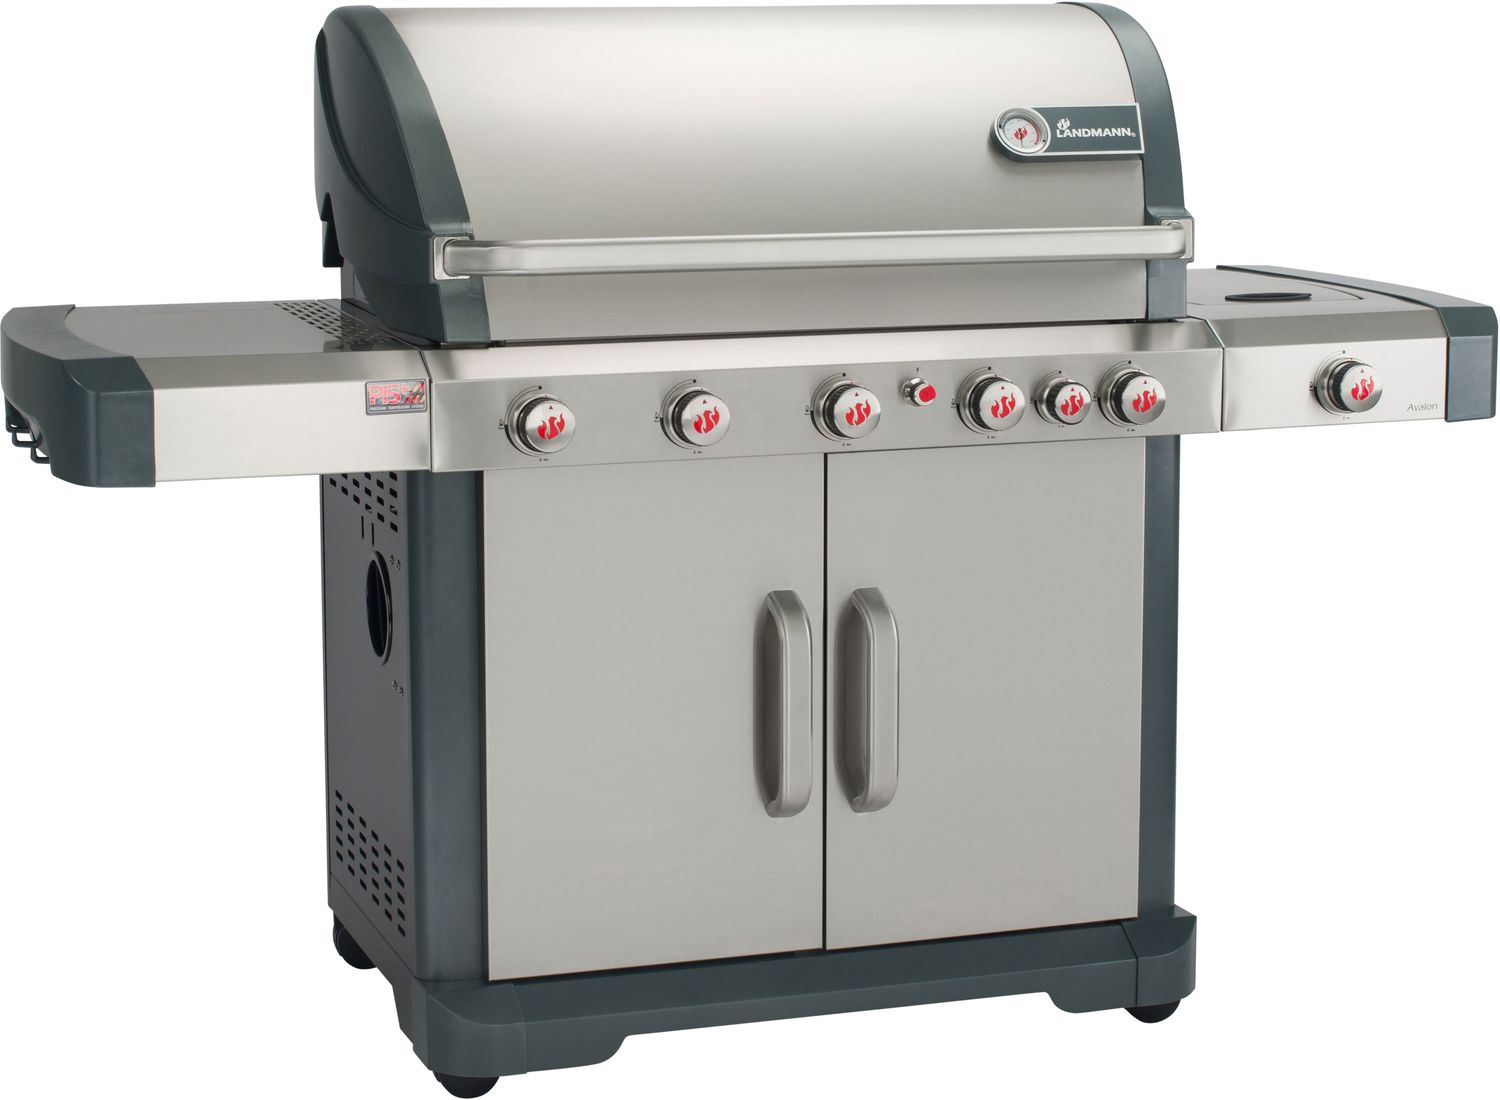 Landmann Gasgrill Vertrieb : Landmann new avalon pts